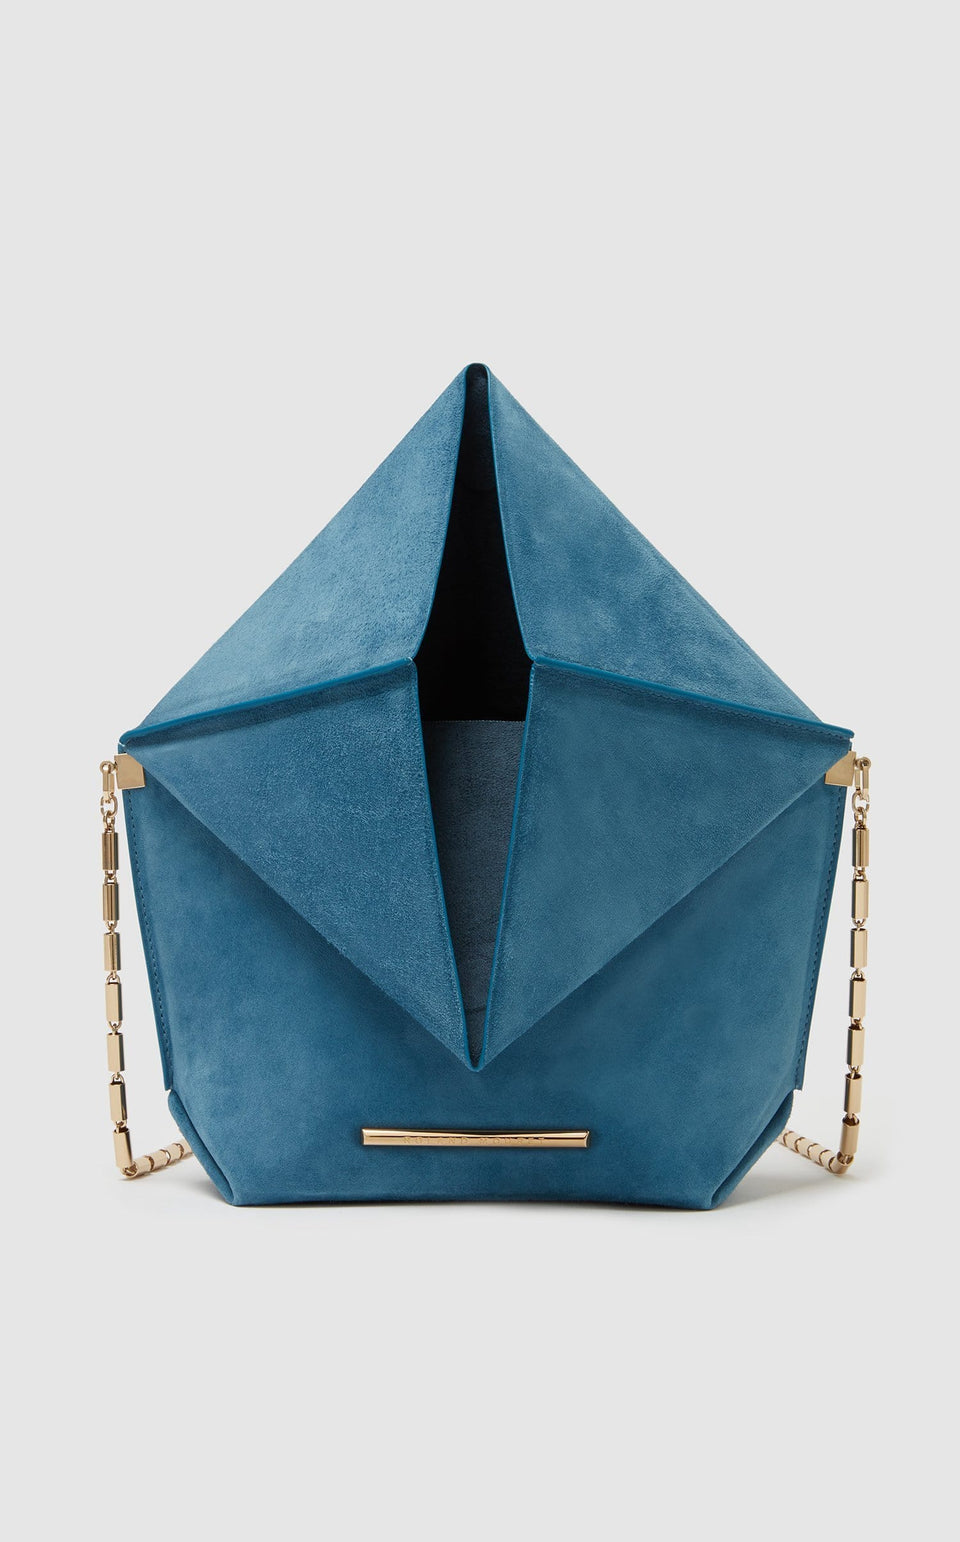 Classico Bag In Cornflower blue from Roland Mouret